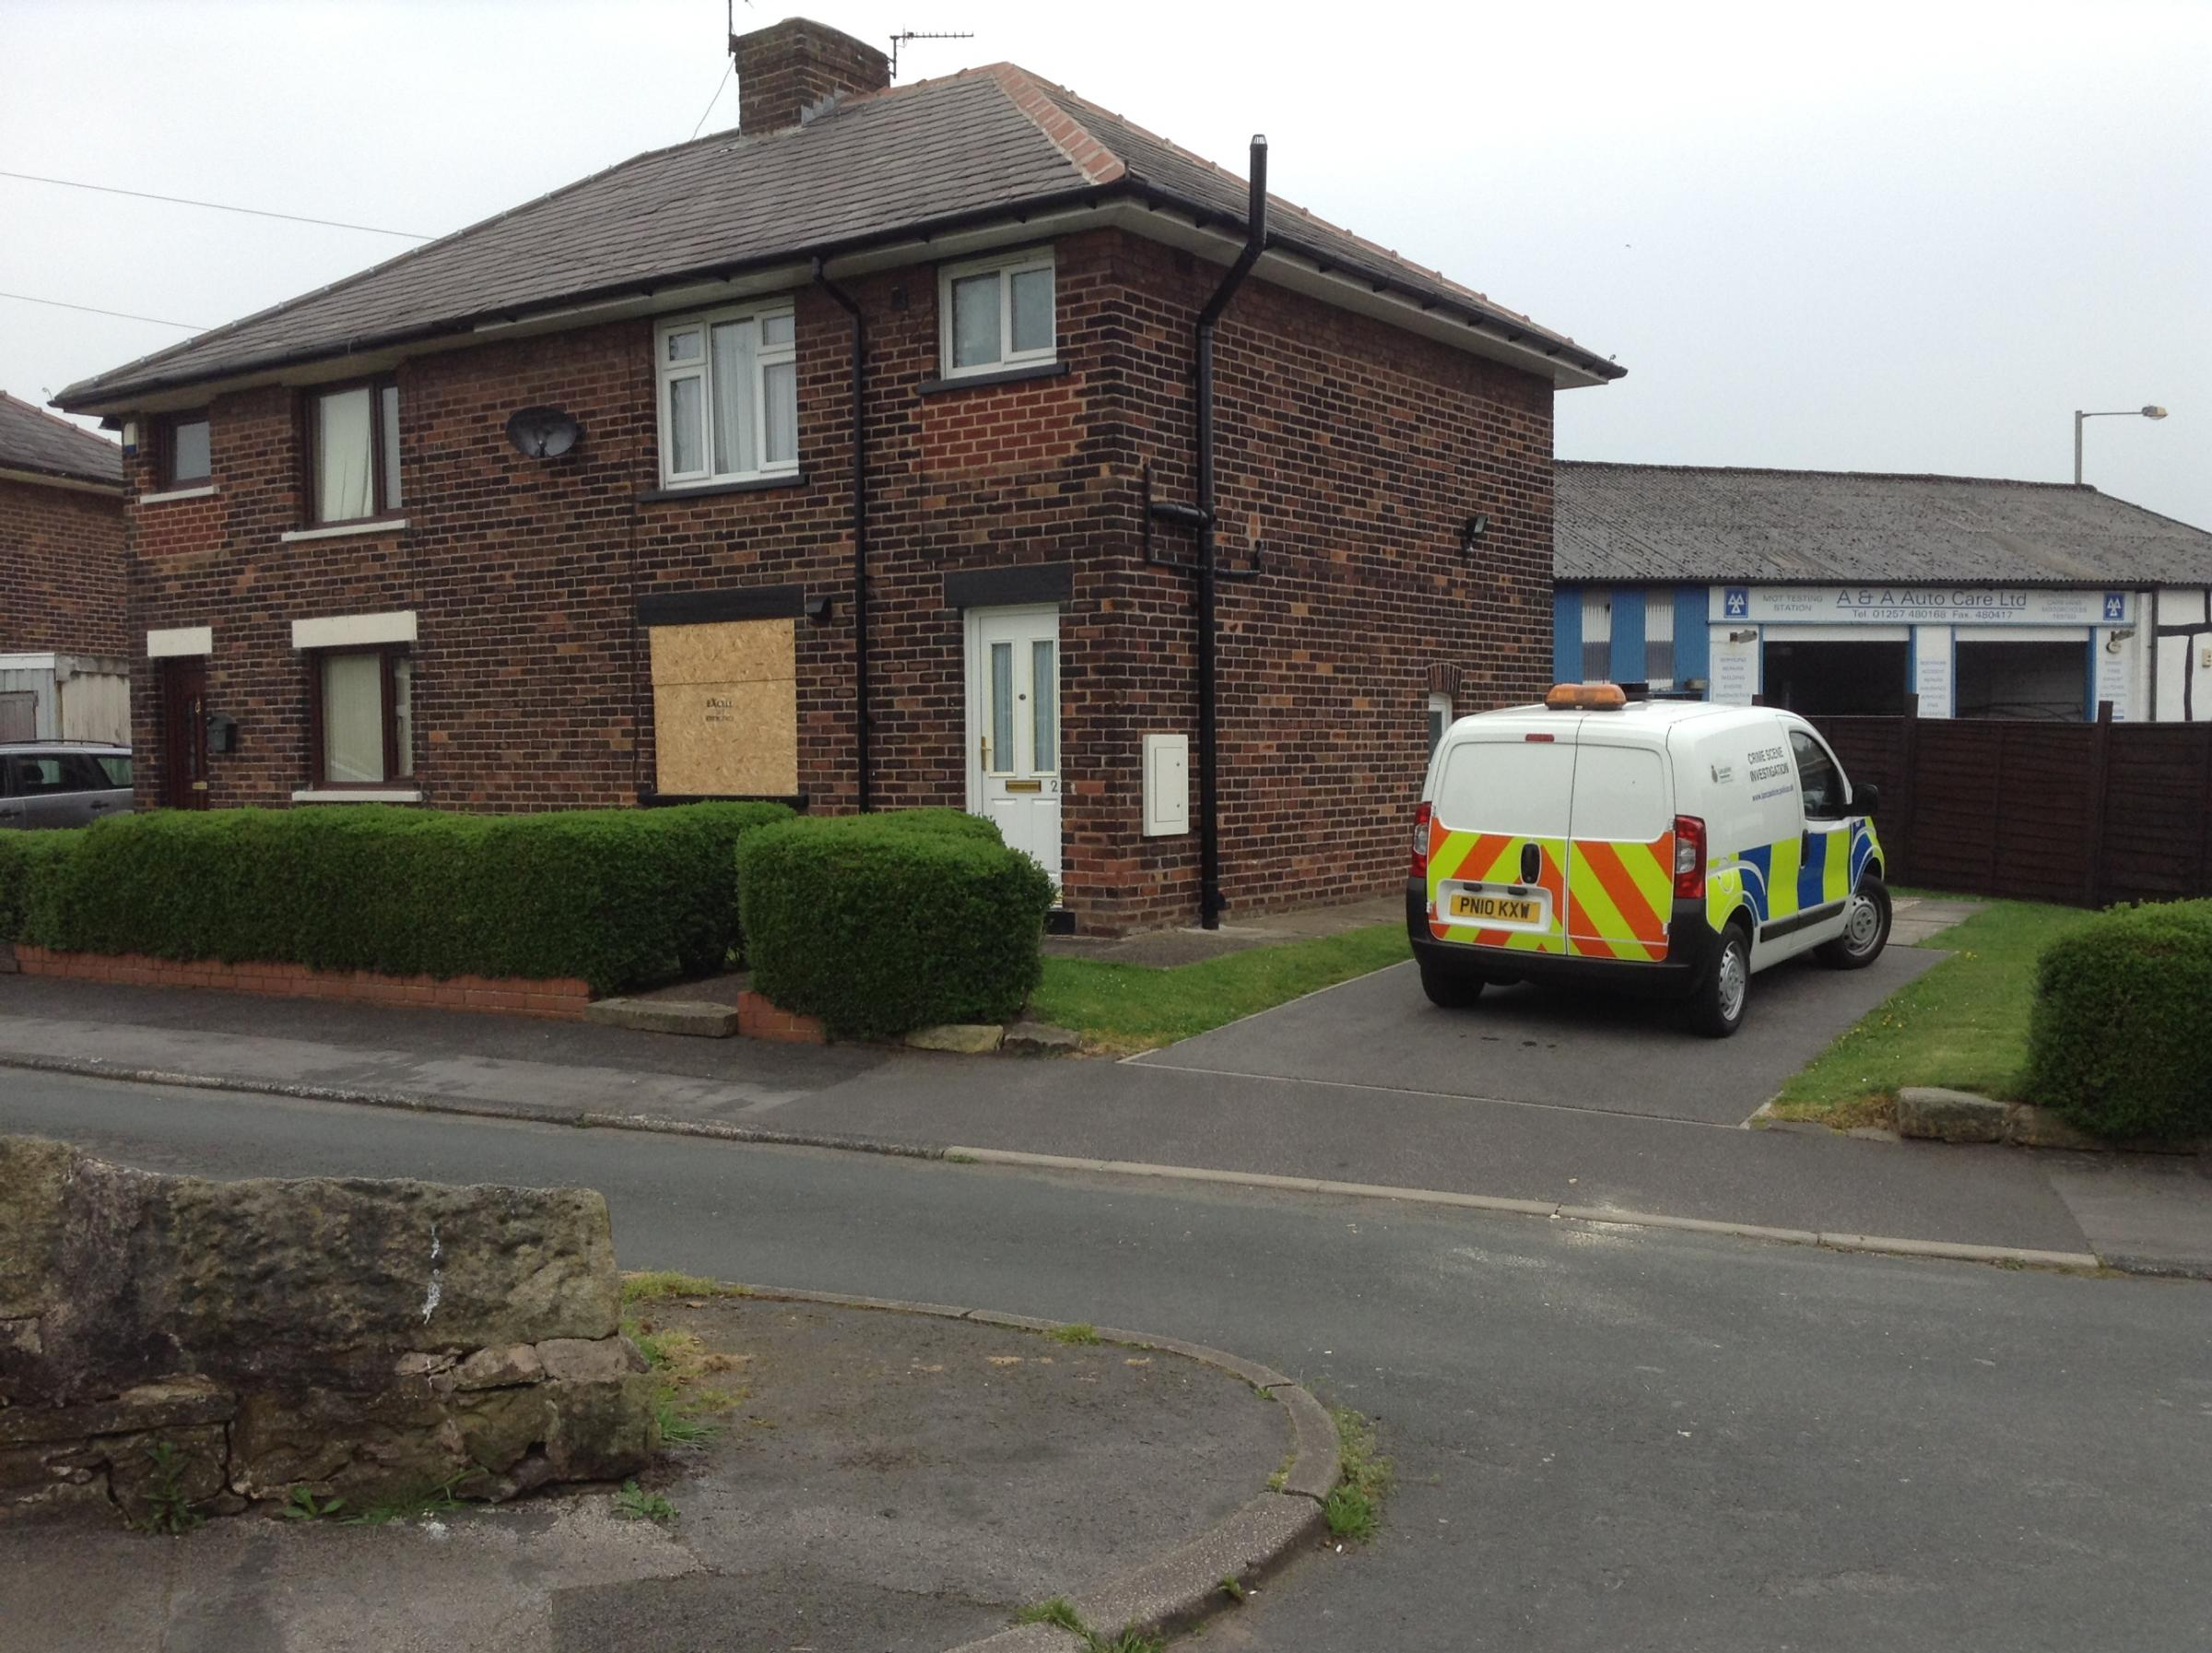 UPDATED: Murder investigation launched after woman's body found in Adlington house